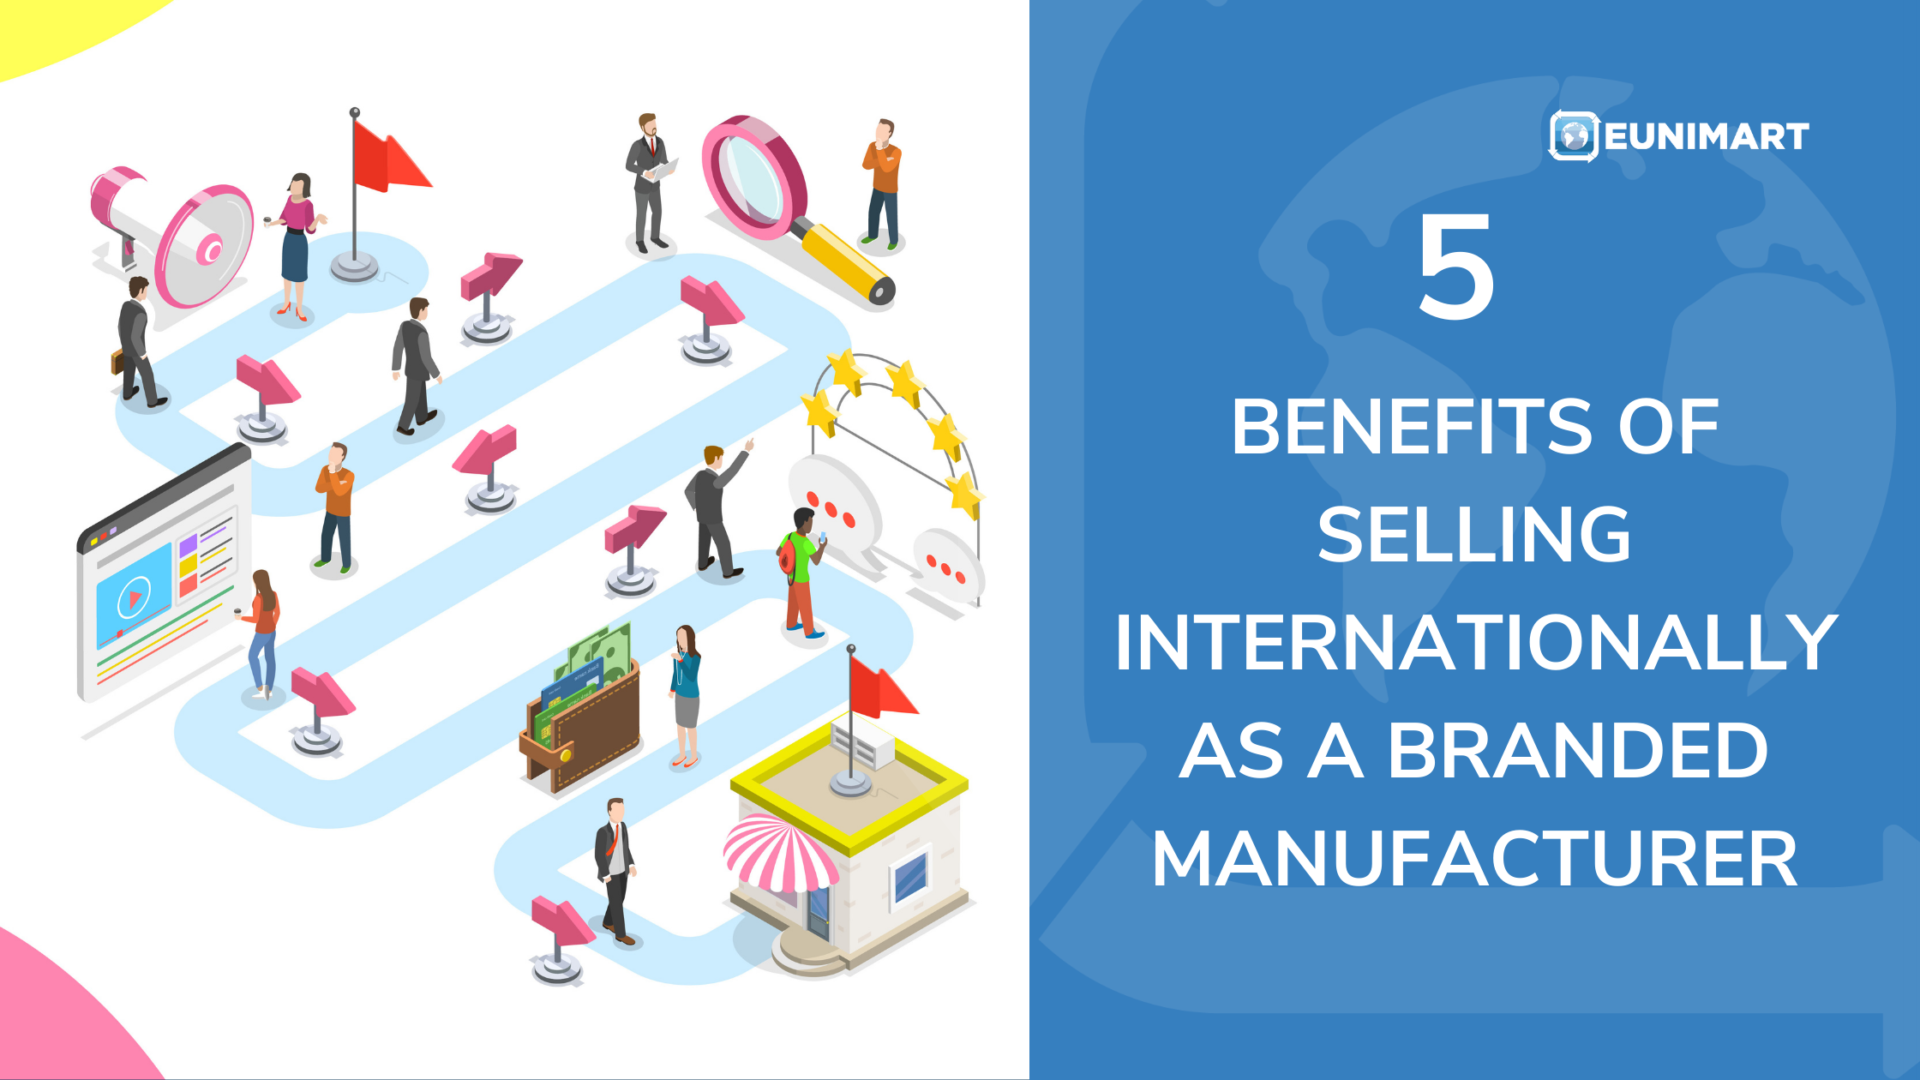 5 Benefits of Selling Internationally as a Branded Manufacturer